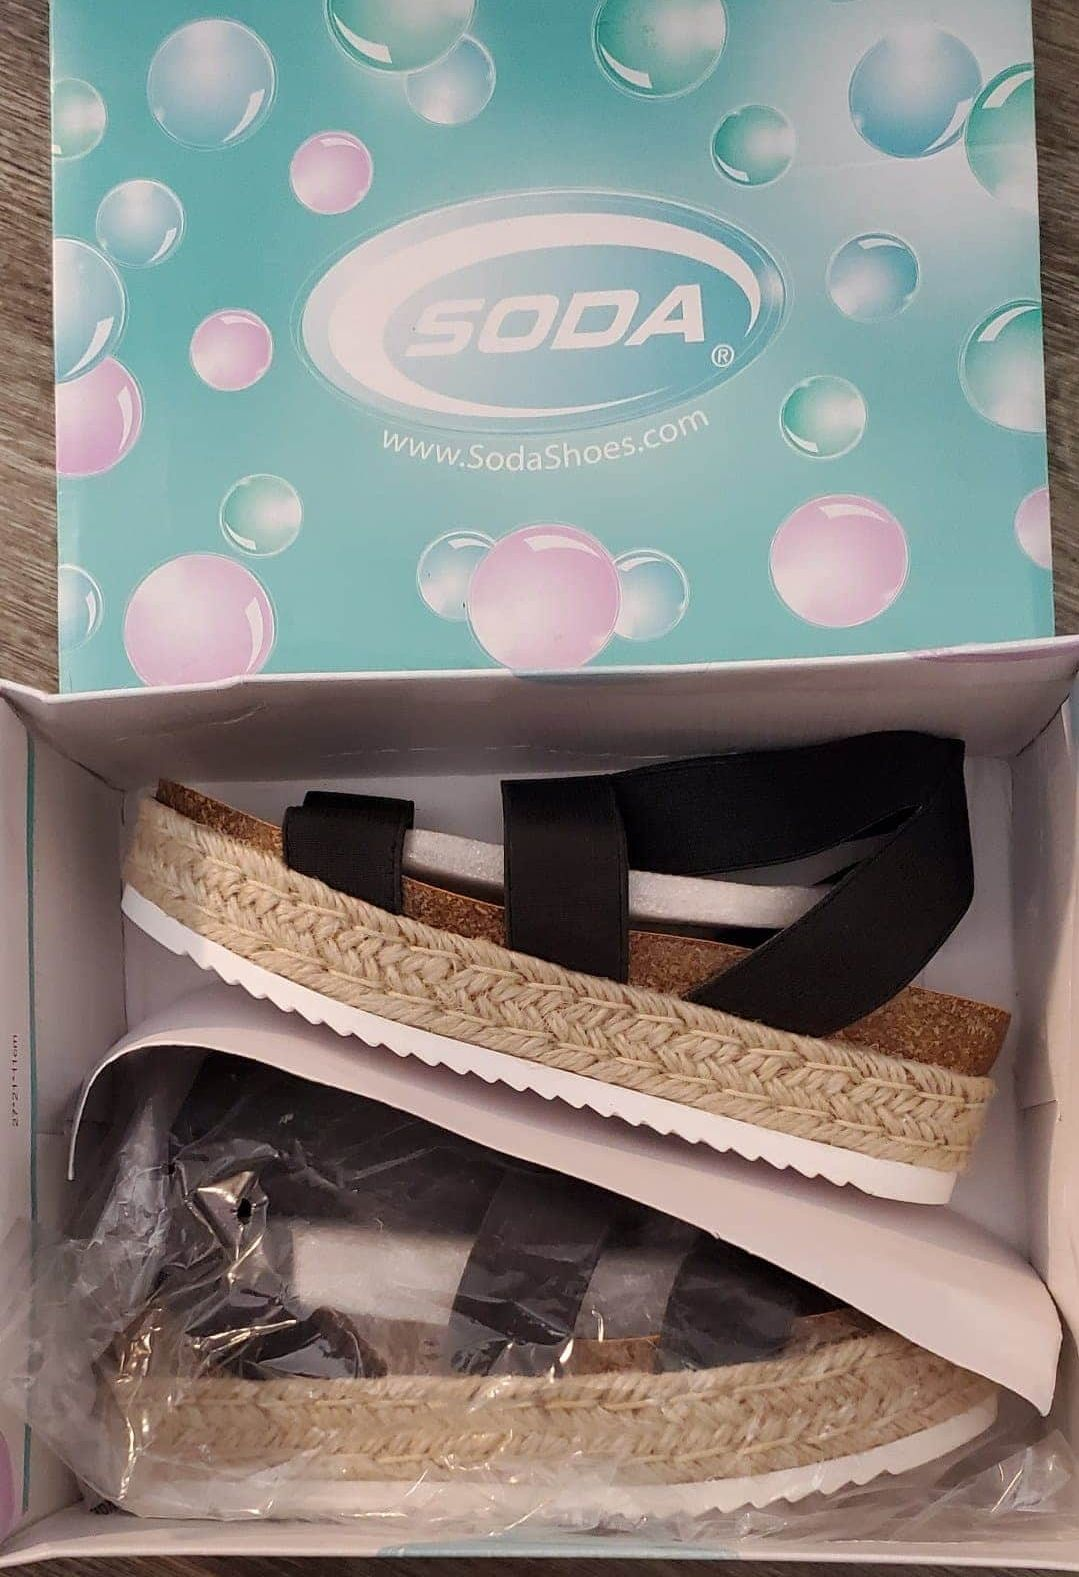 Soda shoes women 6.5